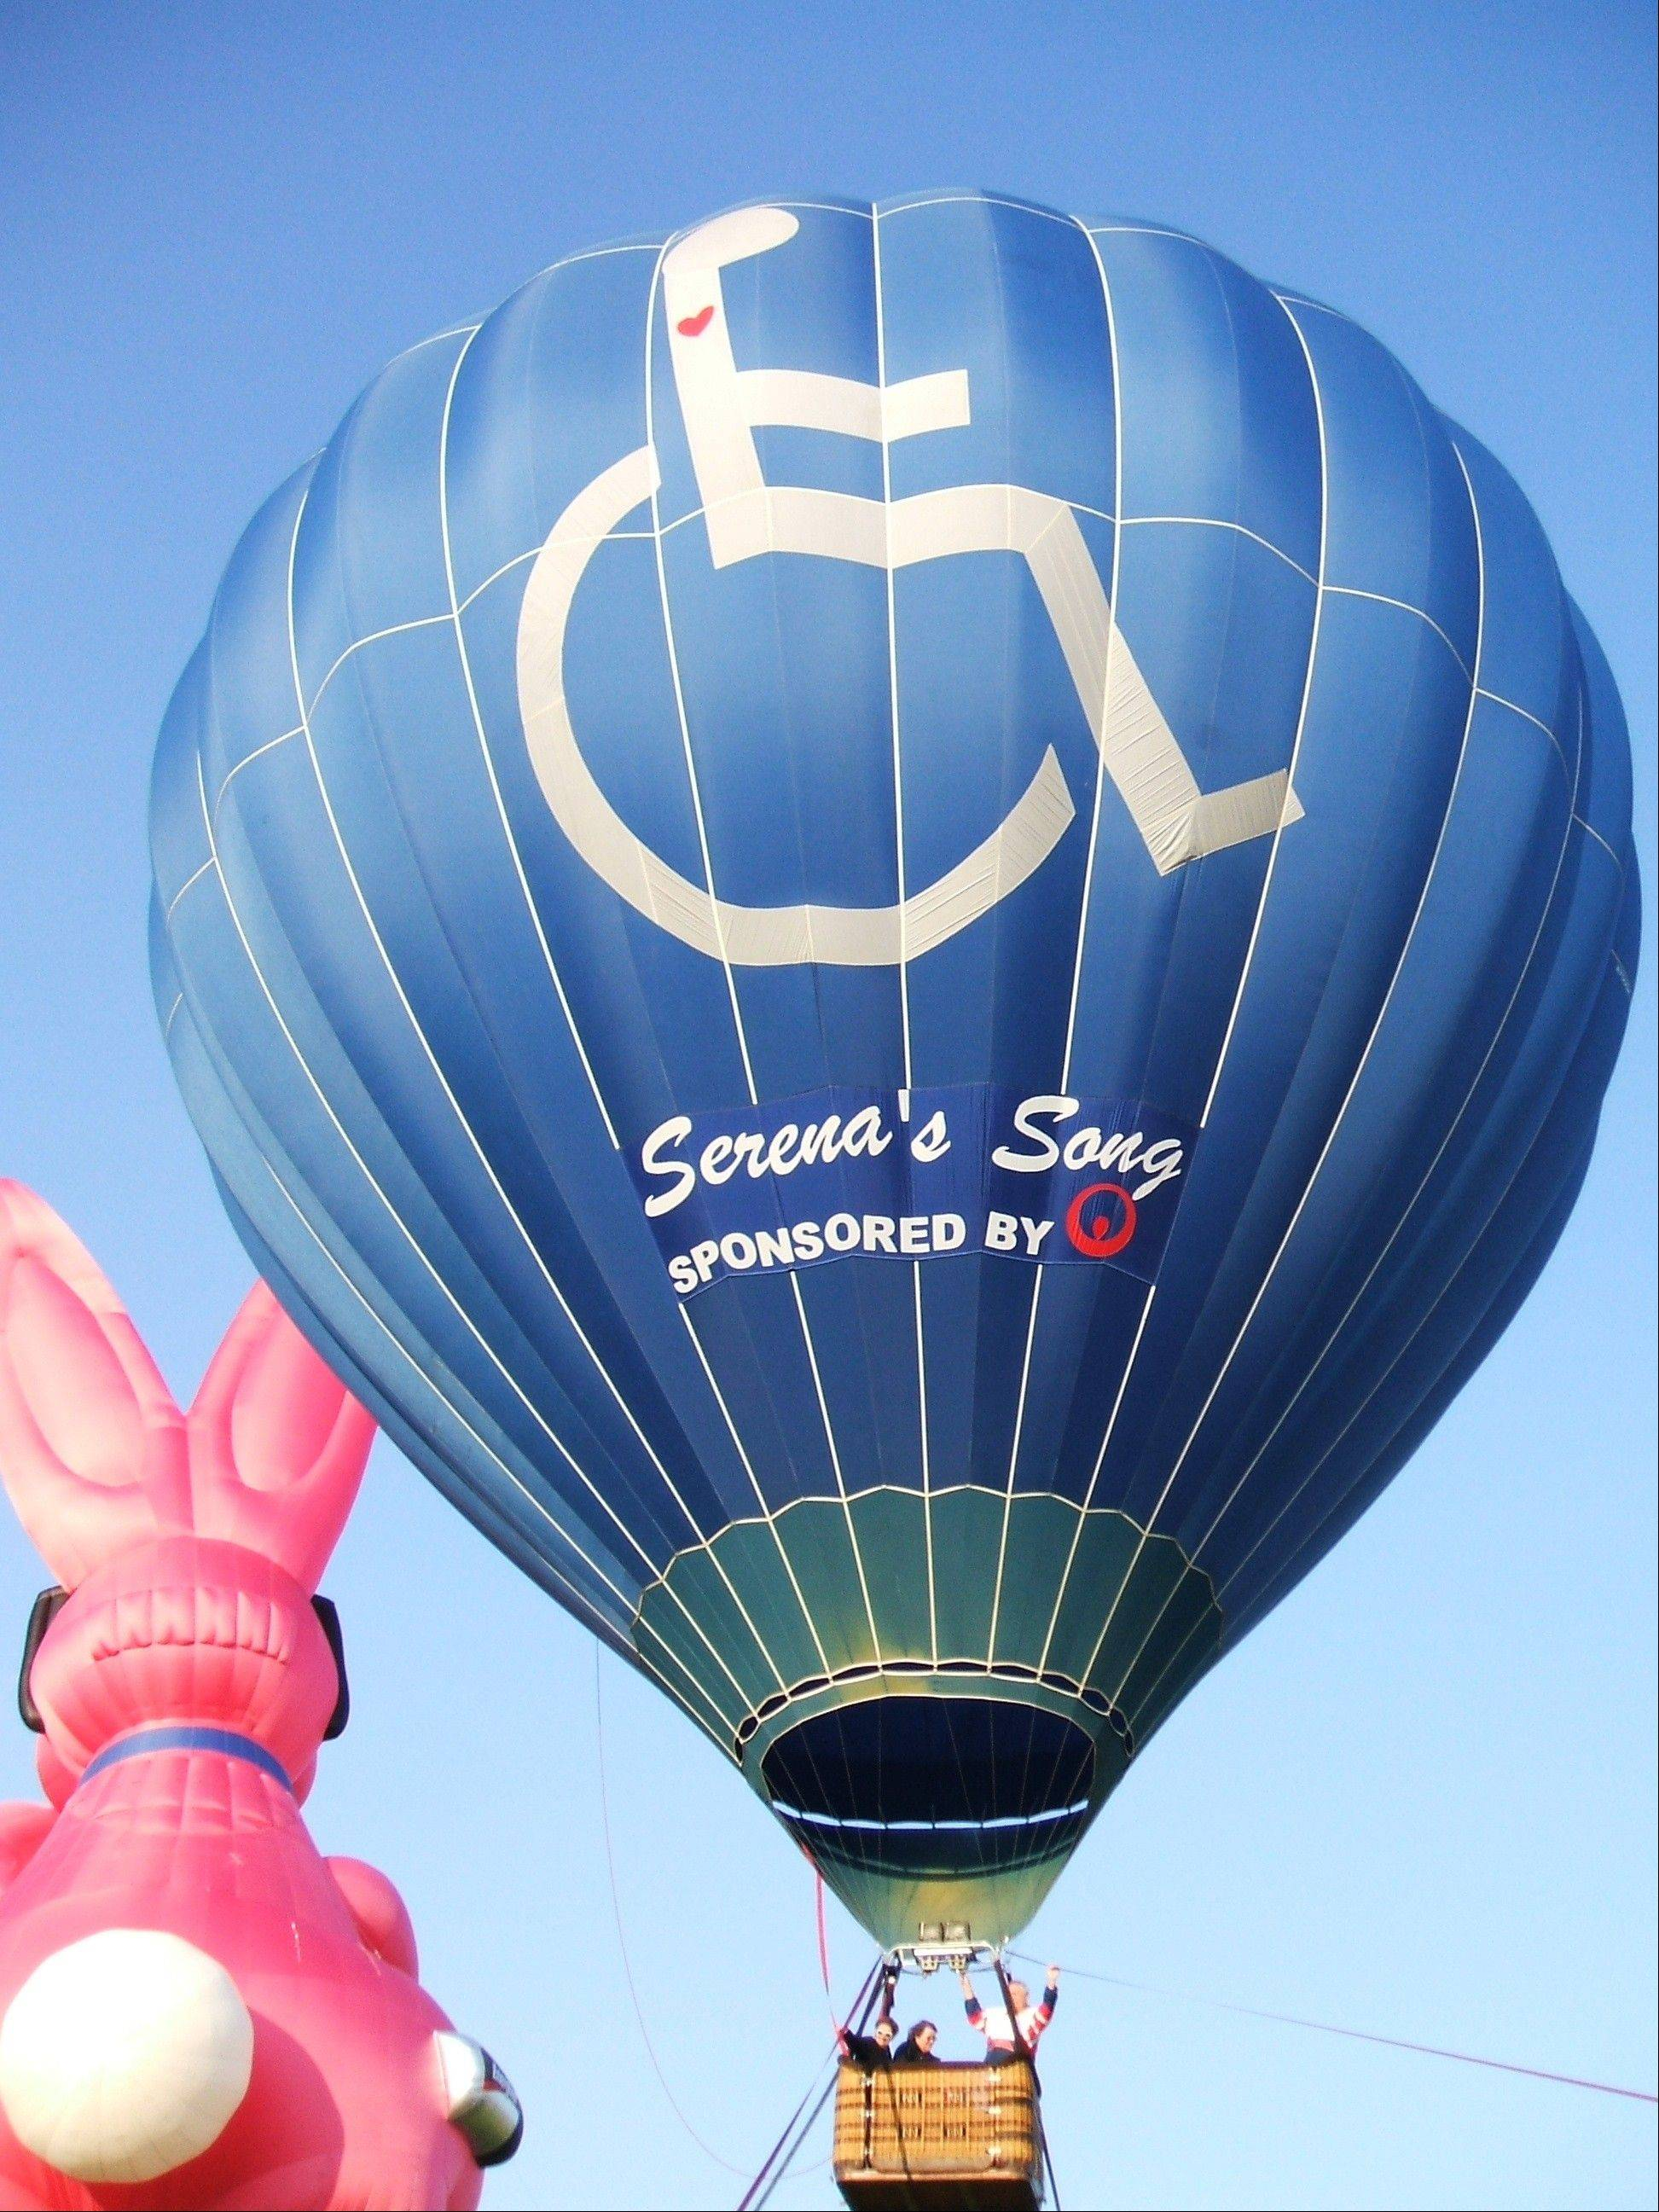 Serena's Song bears a distinctive logo of a person in a wheelchair with a red heart. The wheelchair-accessible hot air balloon offers free tethered rides to children and adults with disabilities while it visits Lisle's Eyes to the Skies festival.